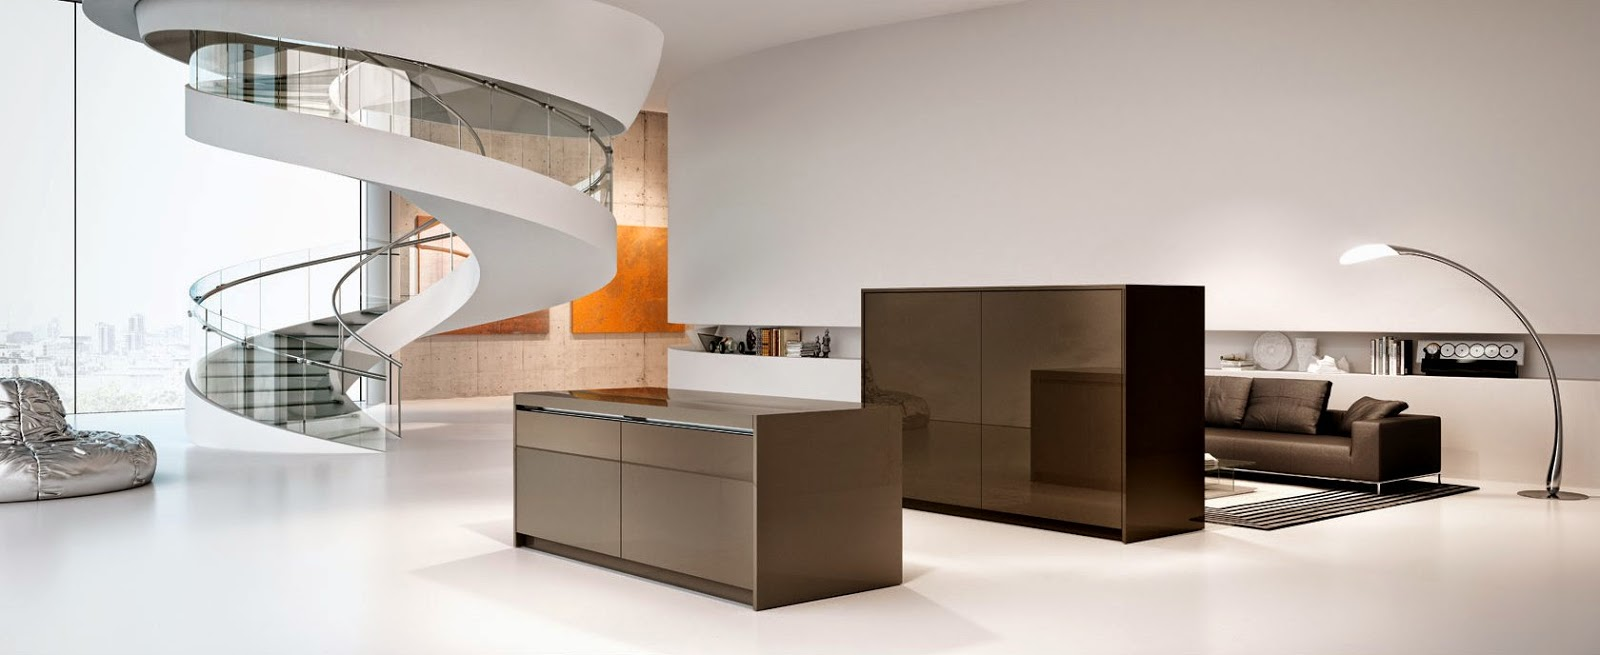 Modern Multifunctional Kitchen Design